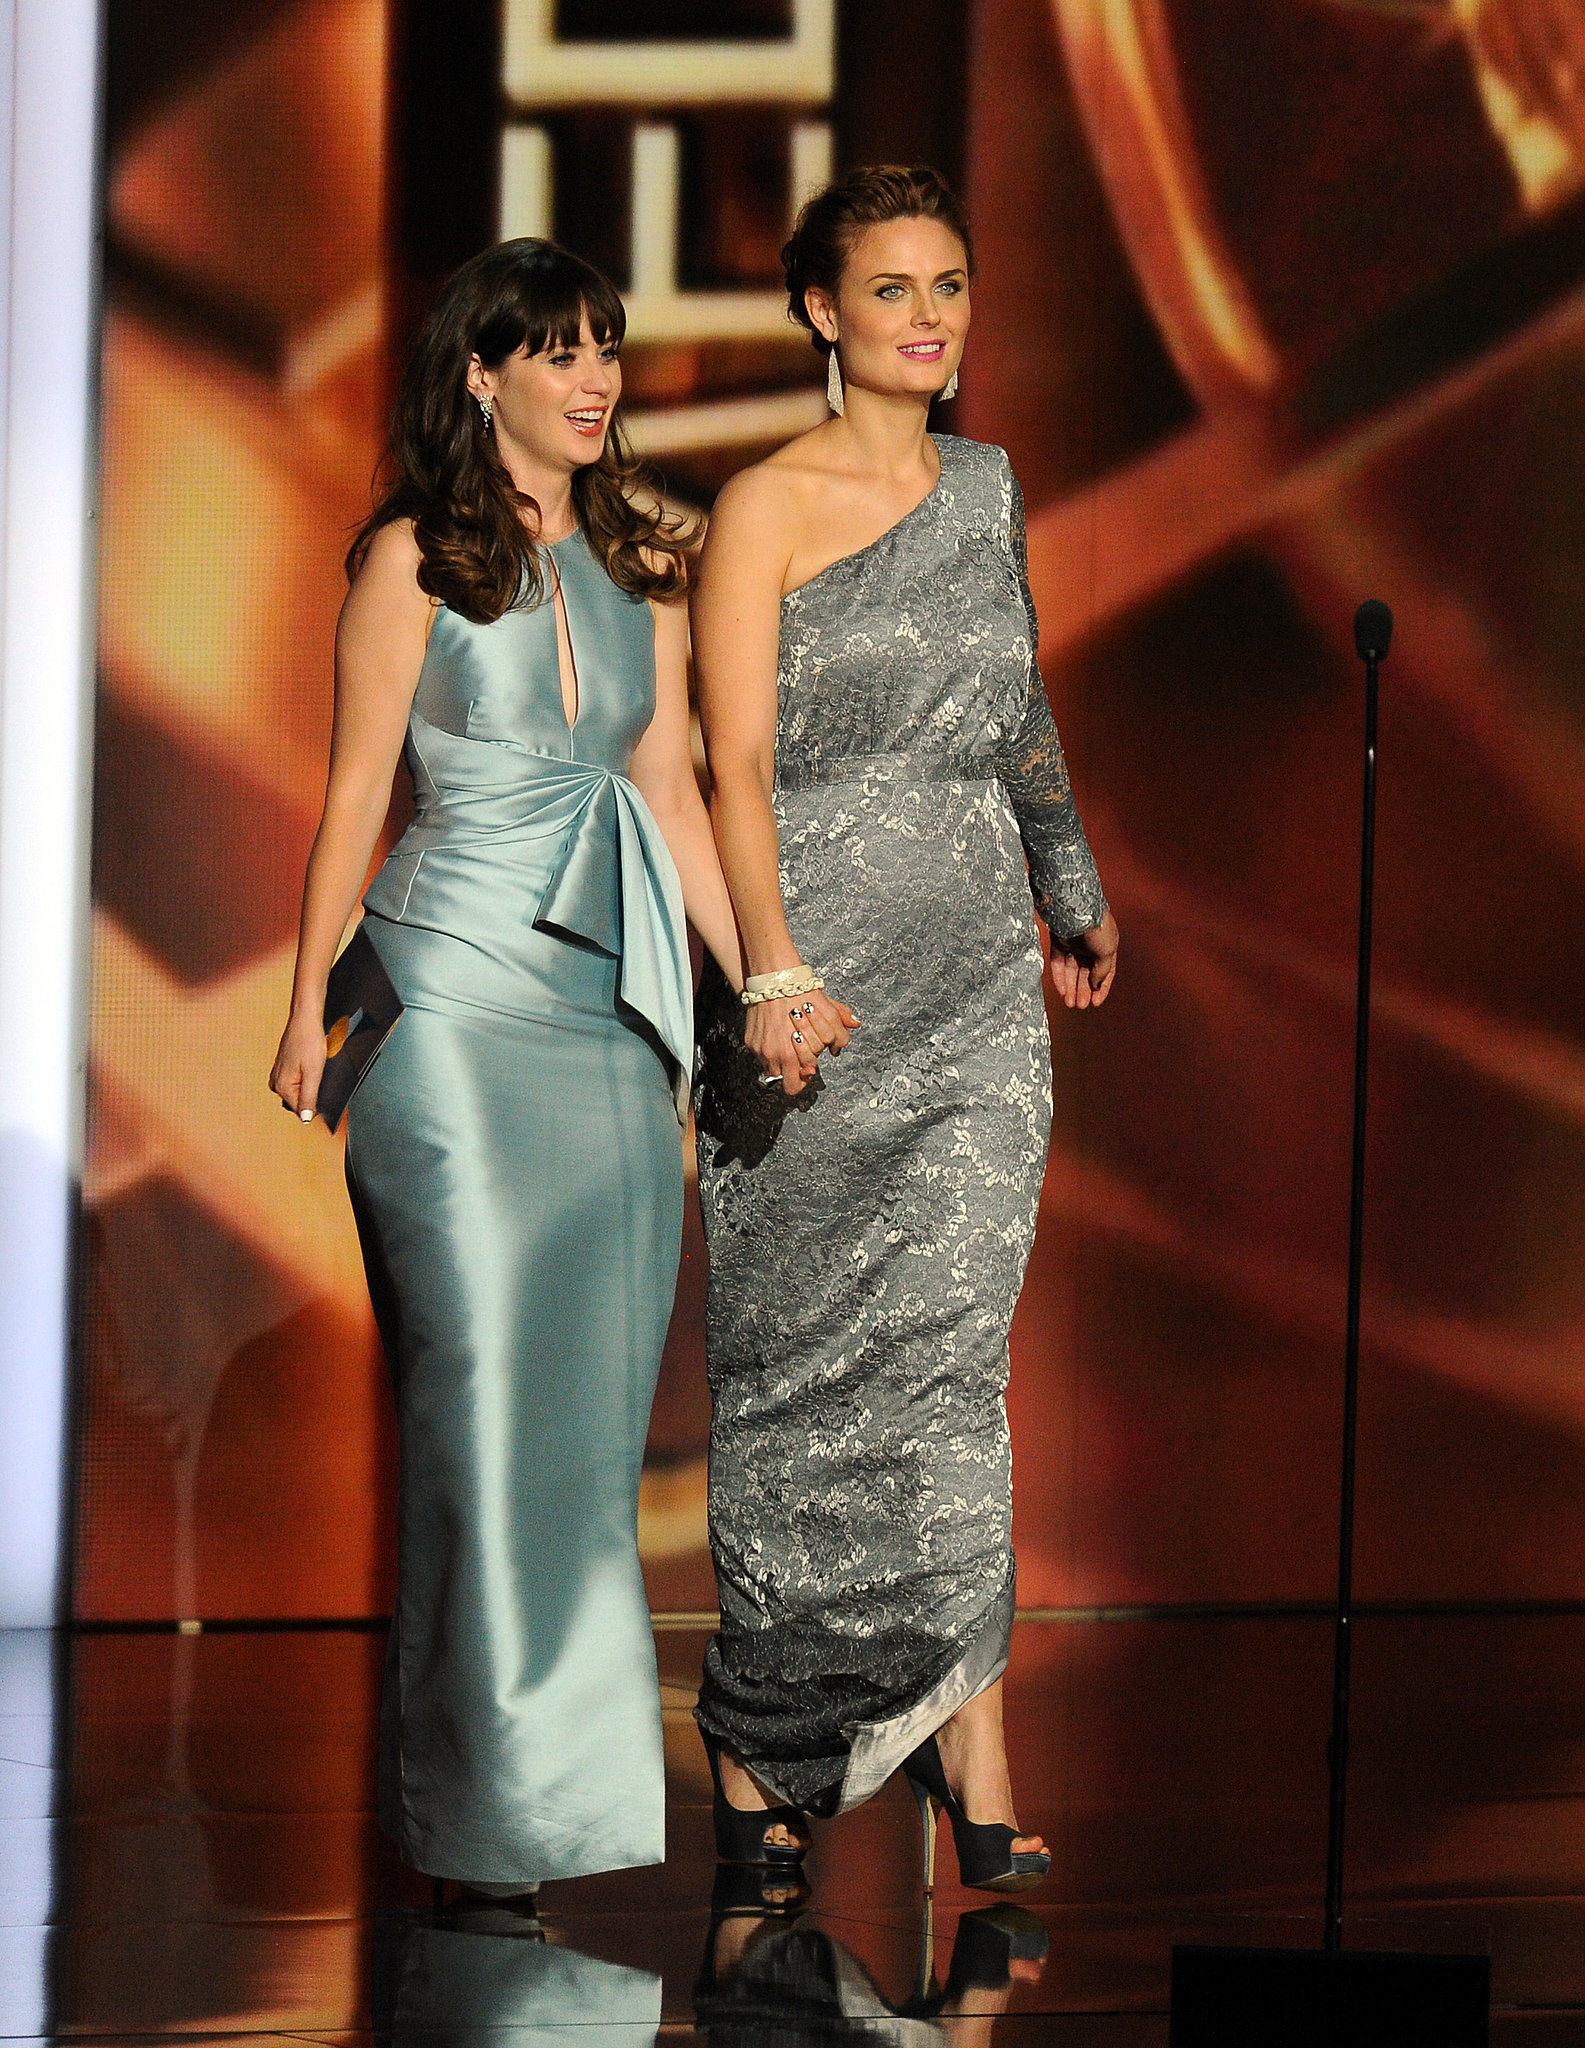 Sisters Emily Deschanel and Zooey Deschanel presented an award together at the Emmys.